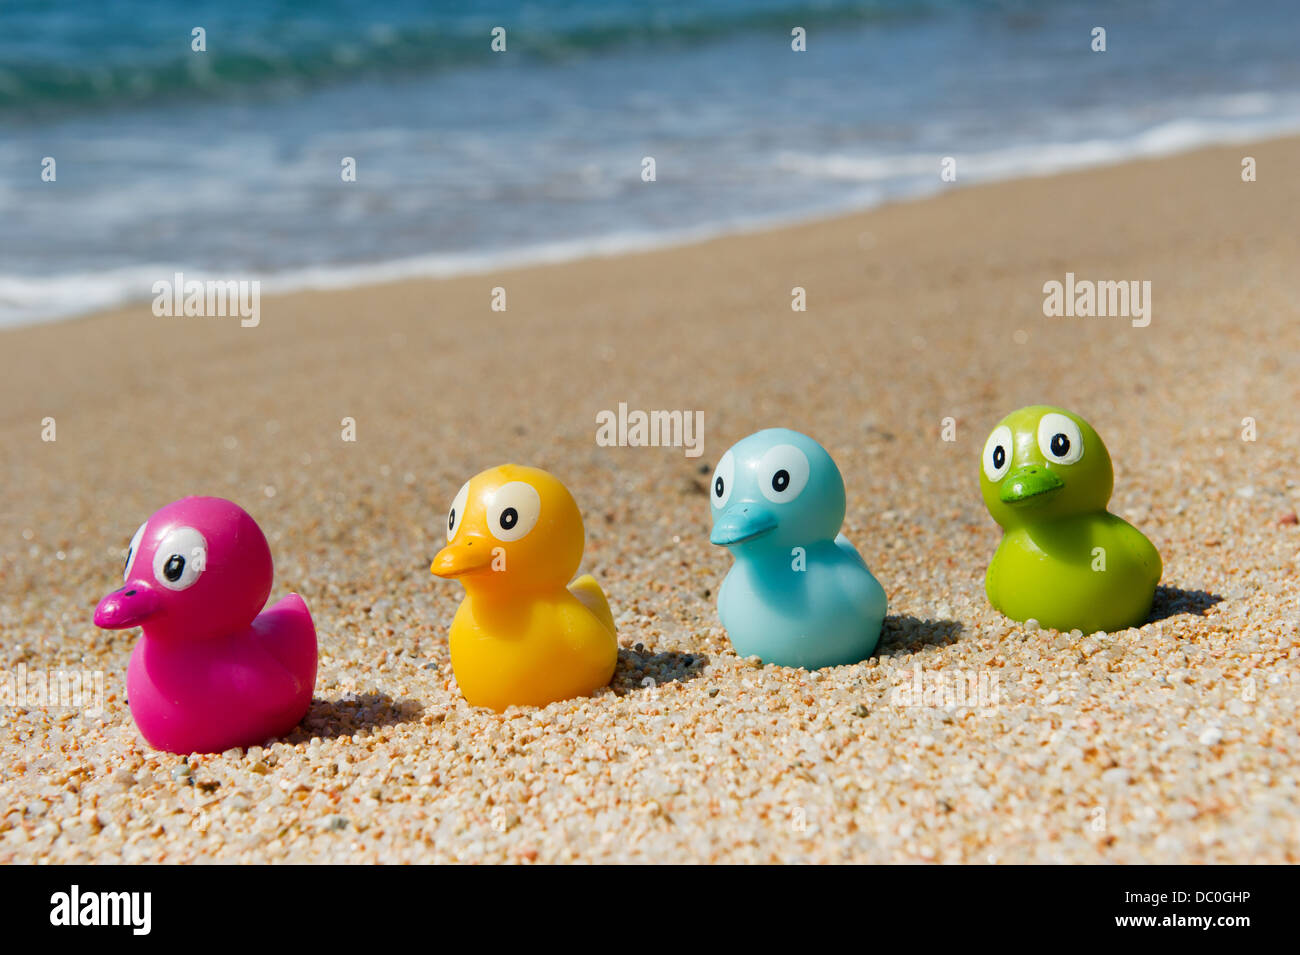 Toys Ducks Stock Photos & Toys Ducks Stock Images - Alamy